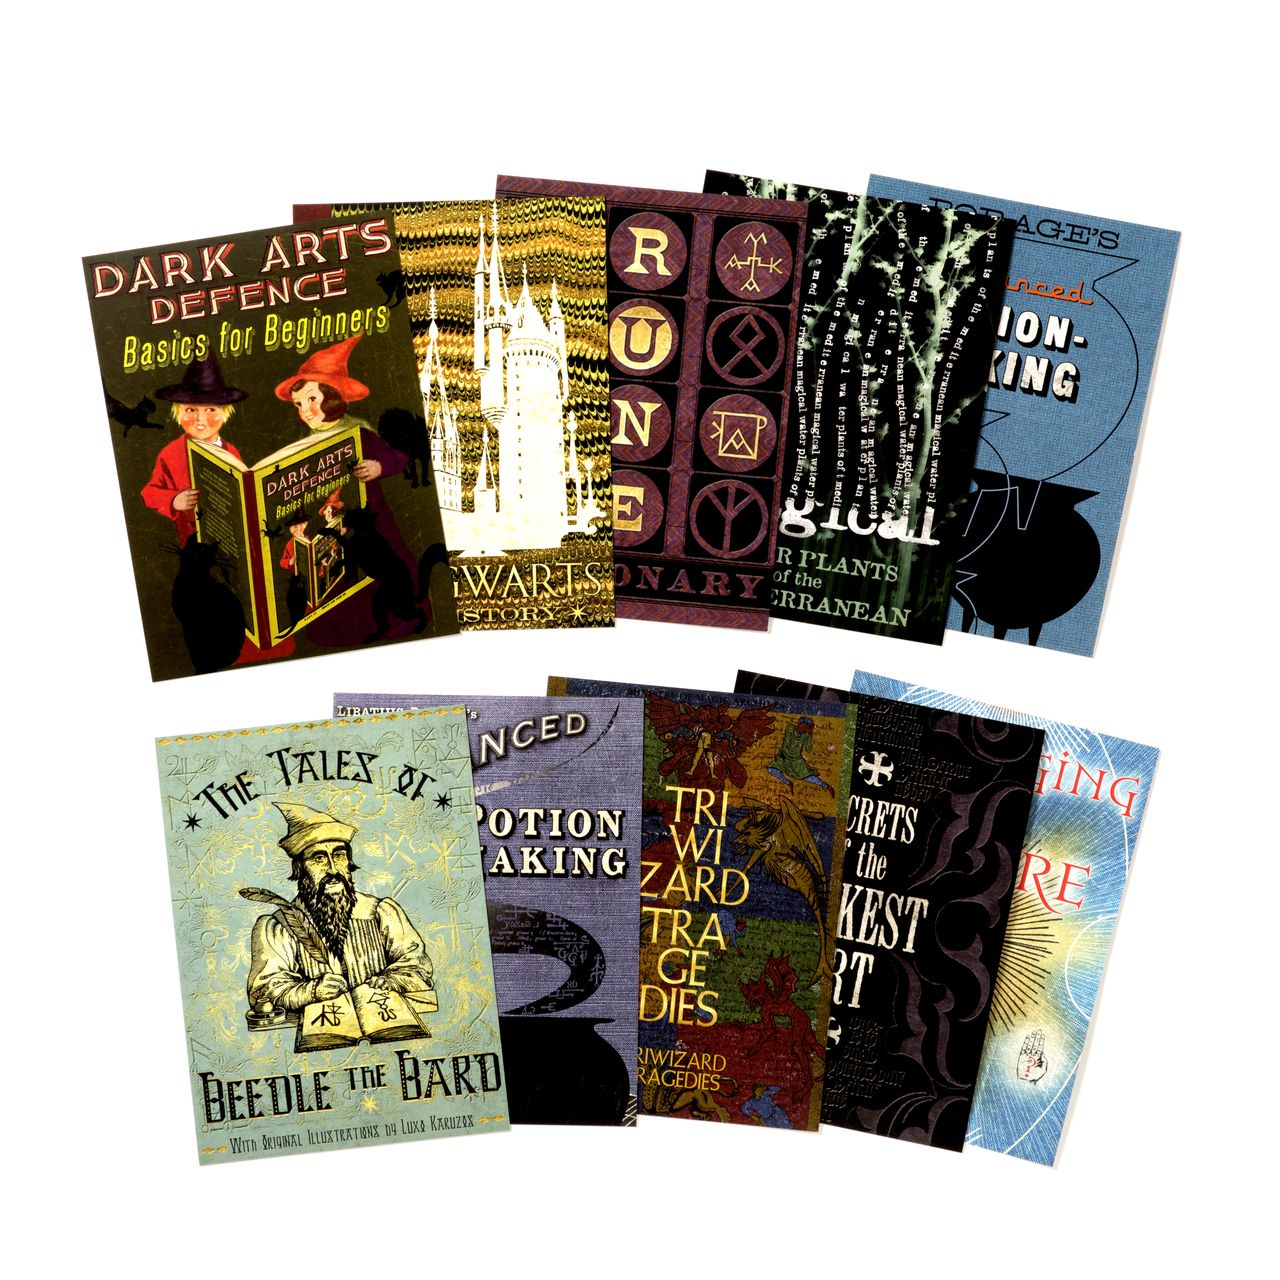 The Hogwarts Series Postcards Collection 1 Harry Potter Shop Harry Potter Decor Harry Potter Merchandise